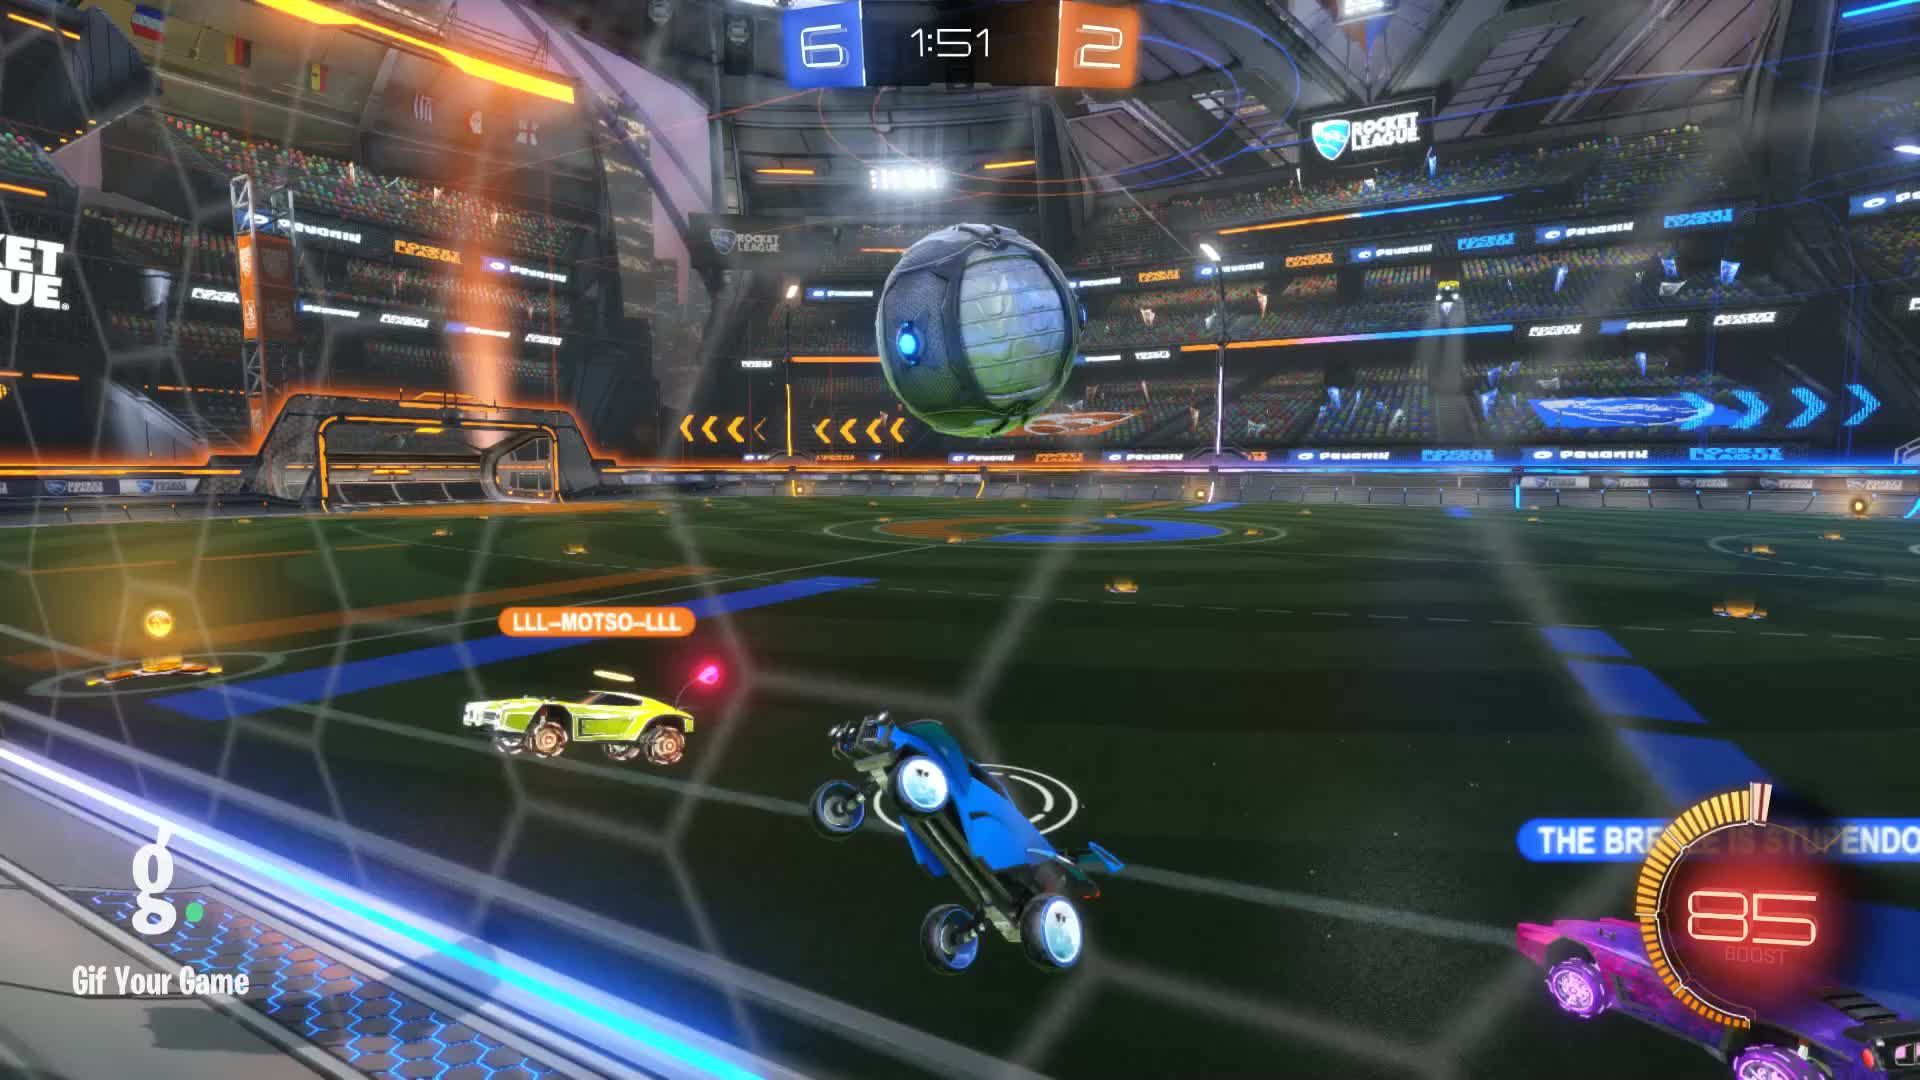 Dale, Gif Your Game, GifYourGame, Goal, Rocket League, RocketLeague, Goal 9: Dale GIFs